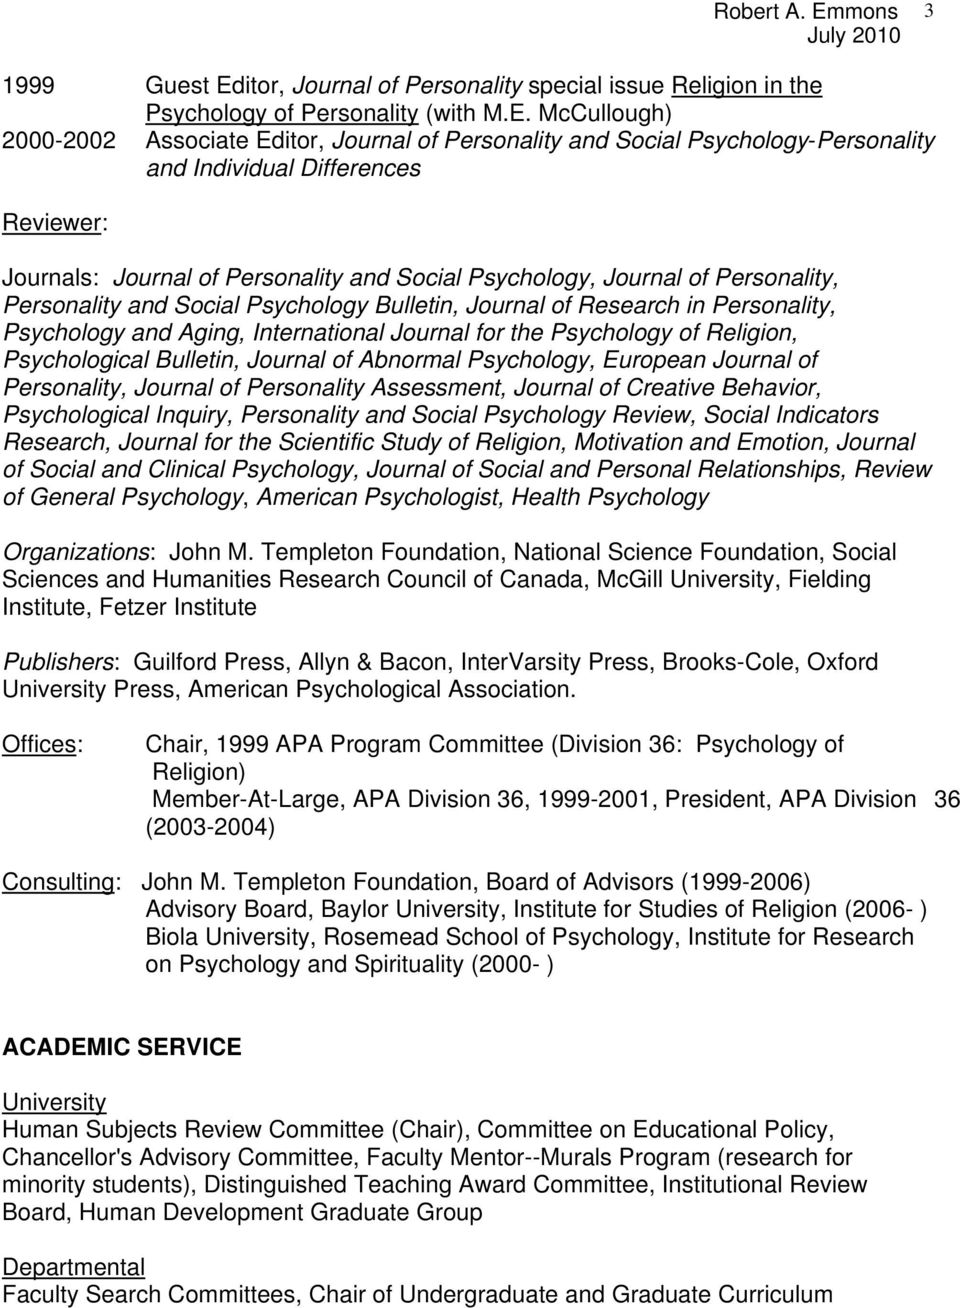 McCullough) 2000-2002 Associate Editor, Journal of Personality and Social Psychology-Personality and Individual Differences Reviewer: Journals: Journal of Personality and Social Psychology, Journal